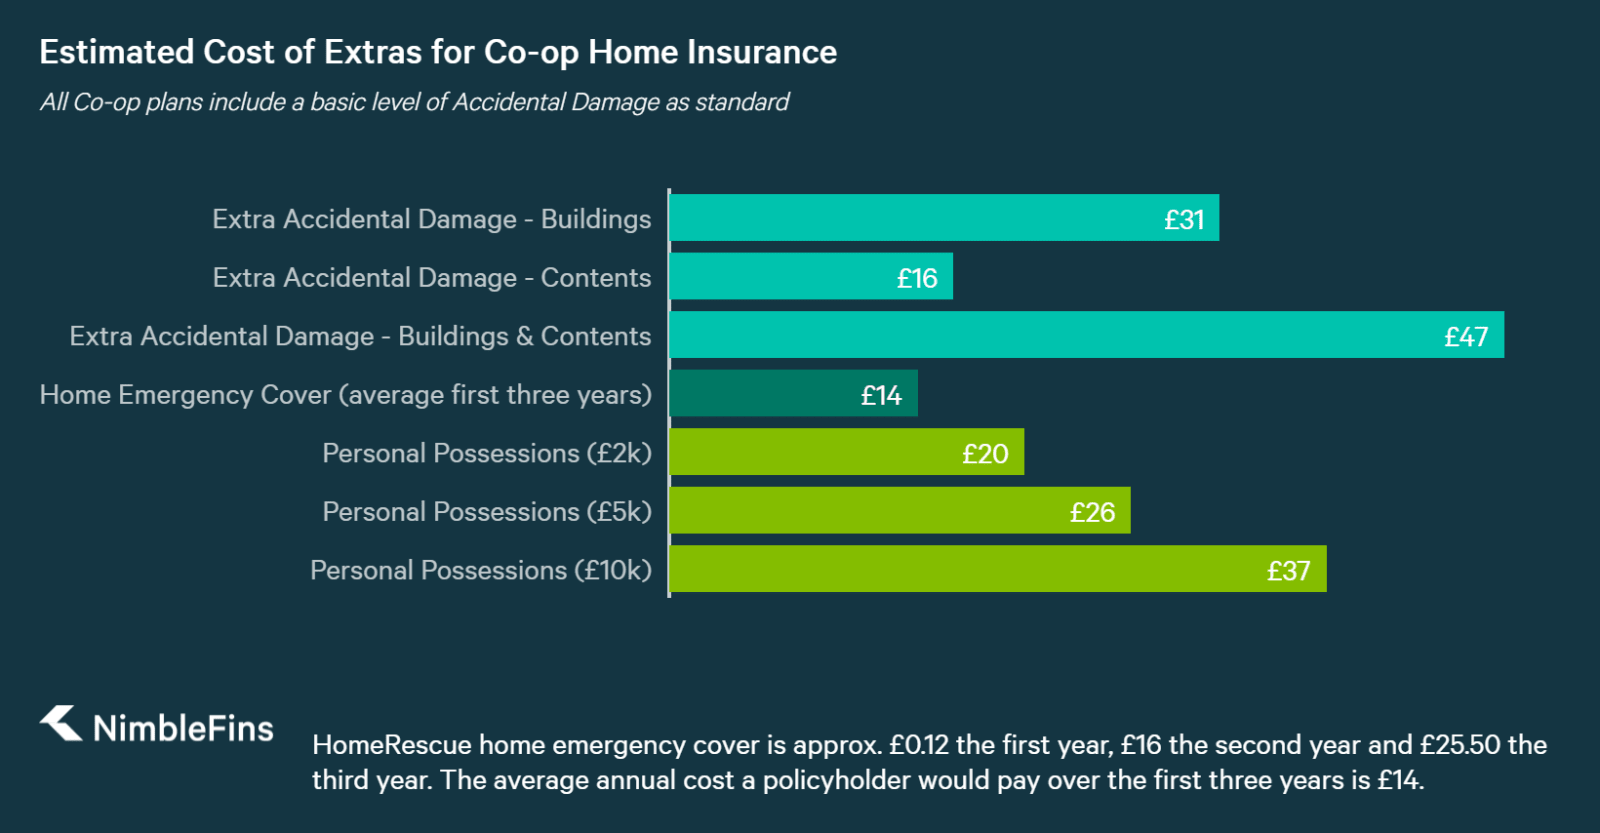 chart showing approximate cost of home insurance add ons for Co-op home insurance